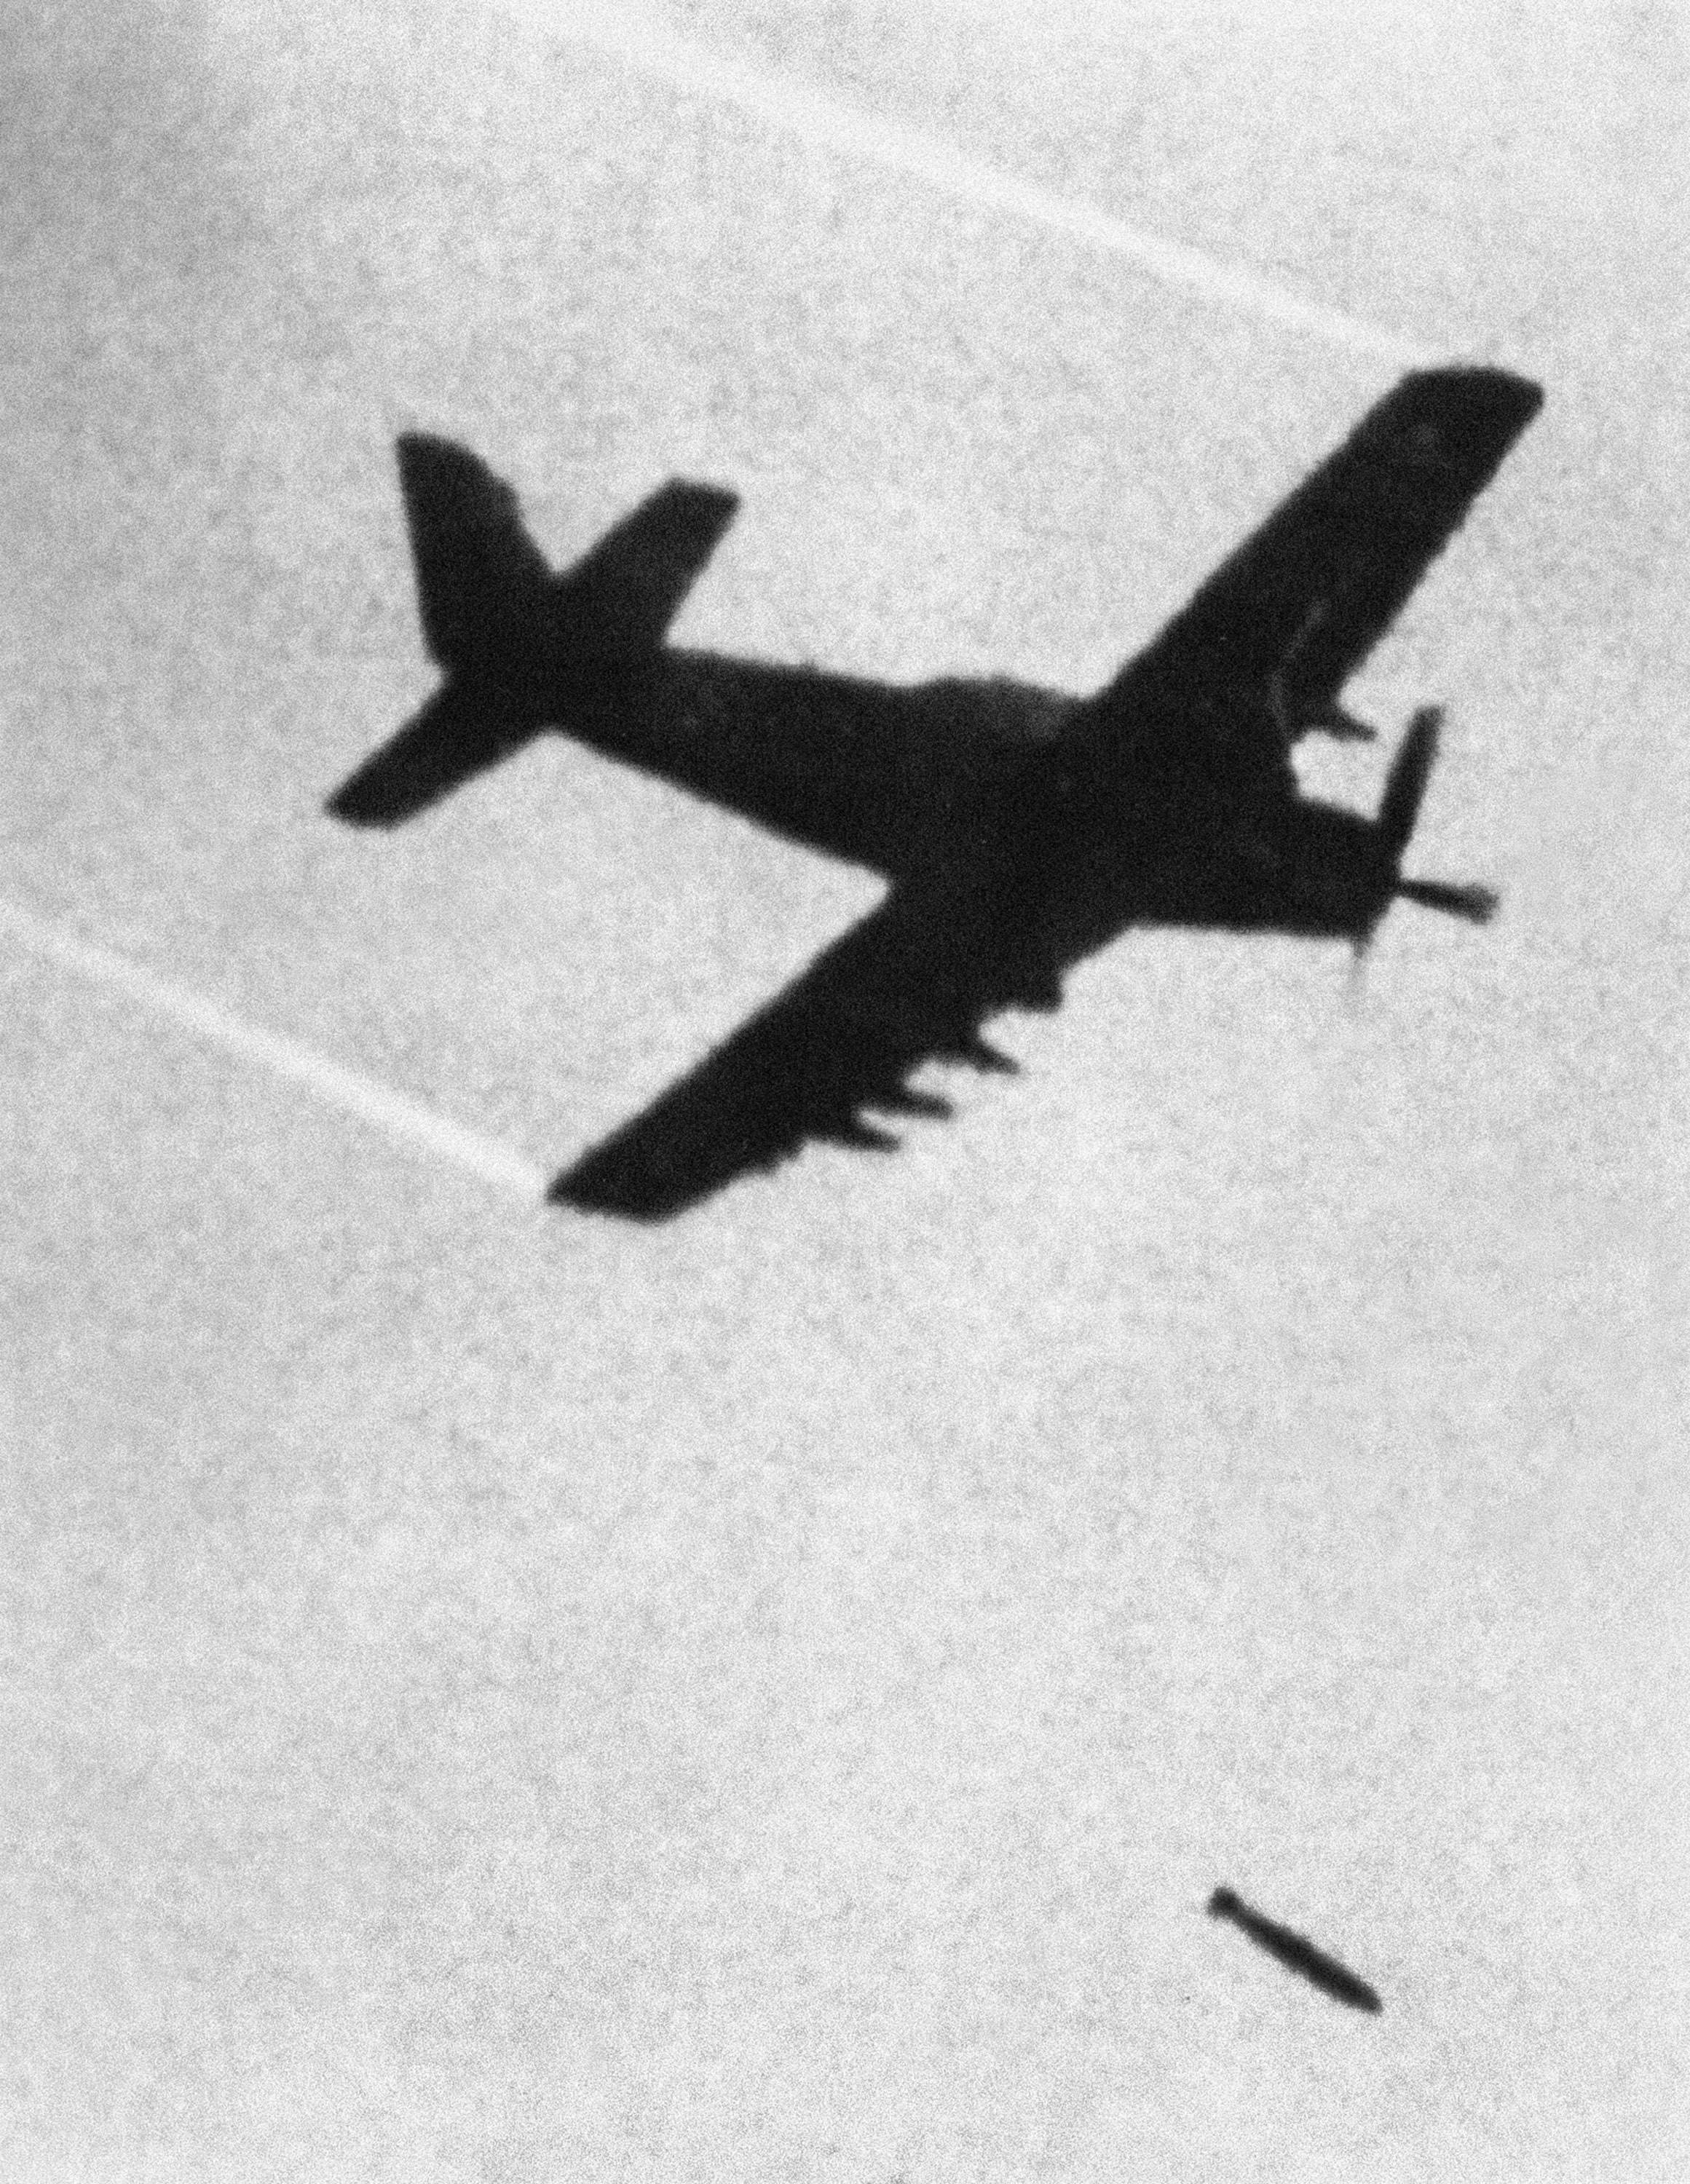 In this June 8, 1972, file photo taken by Associated Press photographer Huynh Cong 'Nick' Ut, a Skyraider, a propeller driven plane of the Vietnamese Airforce (VNAF) 518th Squadron, drops a bomb with incendiary napalm and white phosphorus jelly over Trang Bang village. NICK UT/THE ASSOCIATED PRESS